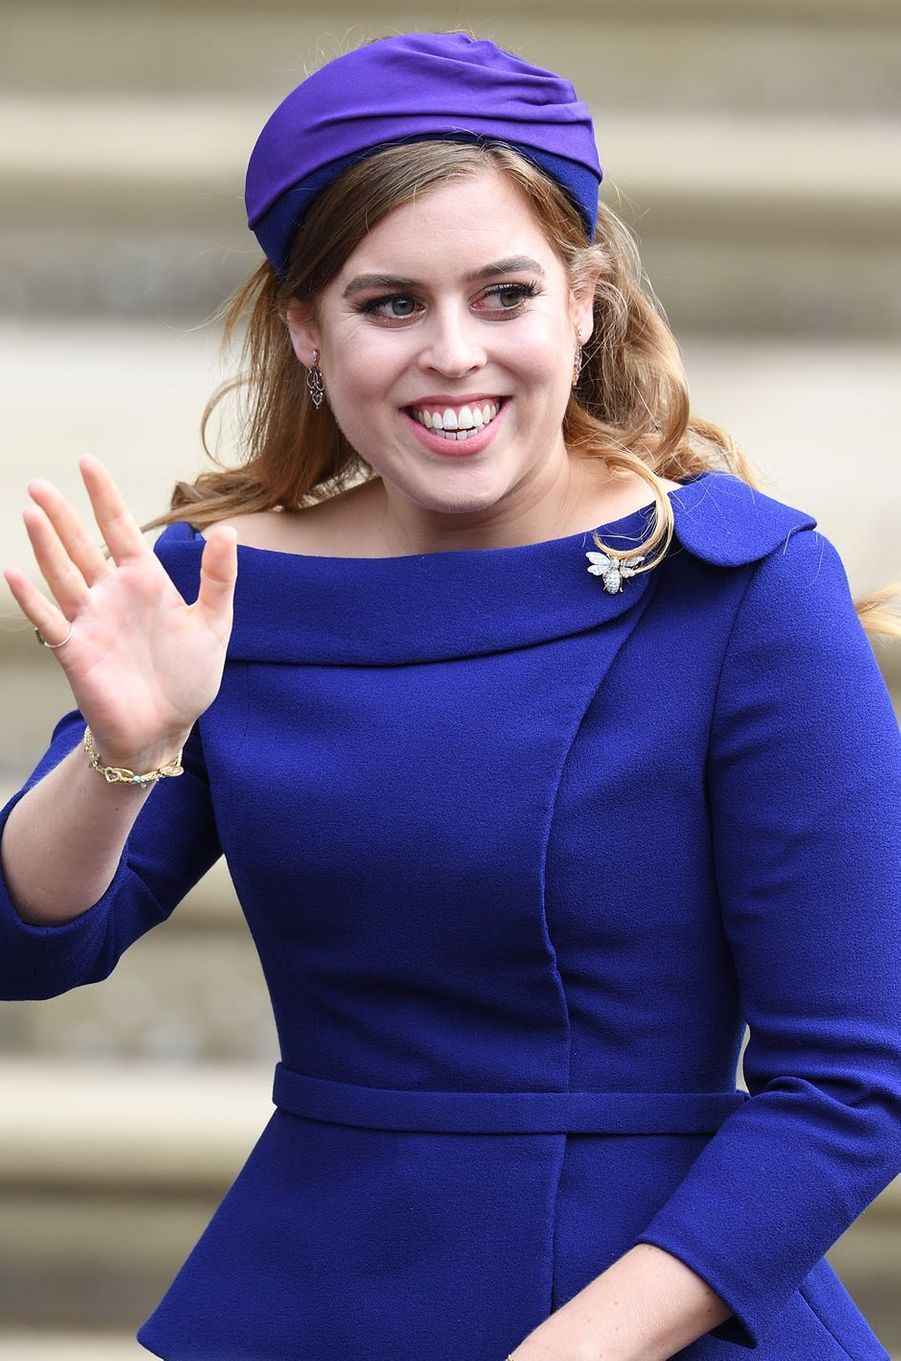 La princesse Beatrice d'York à Windsor, le 12 octobre 2018